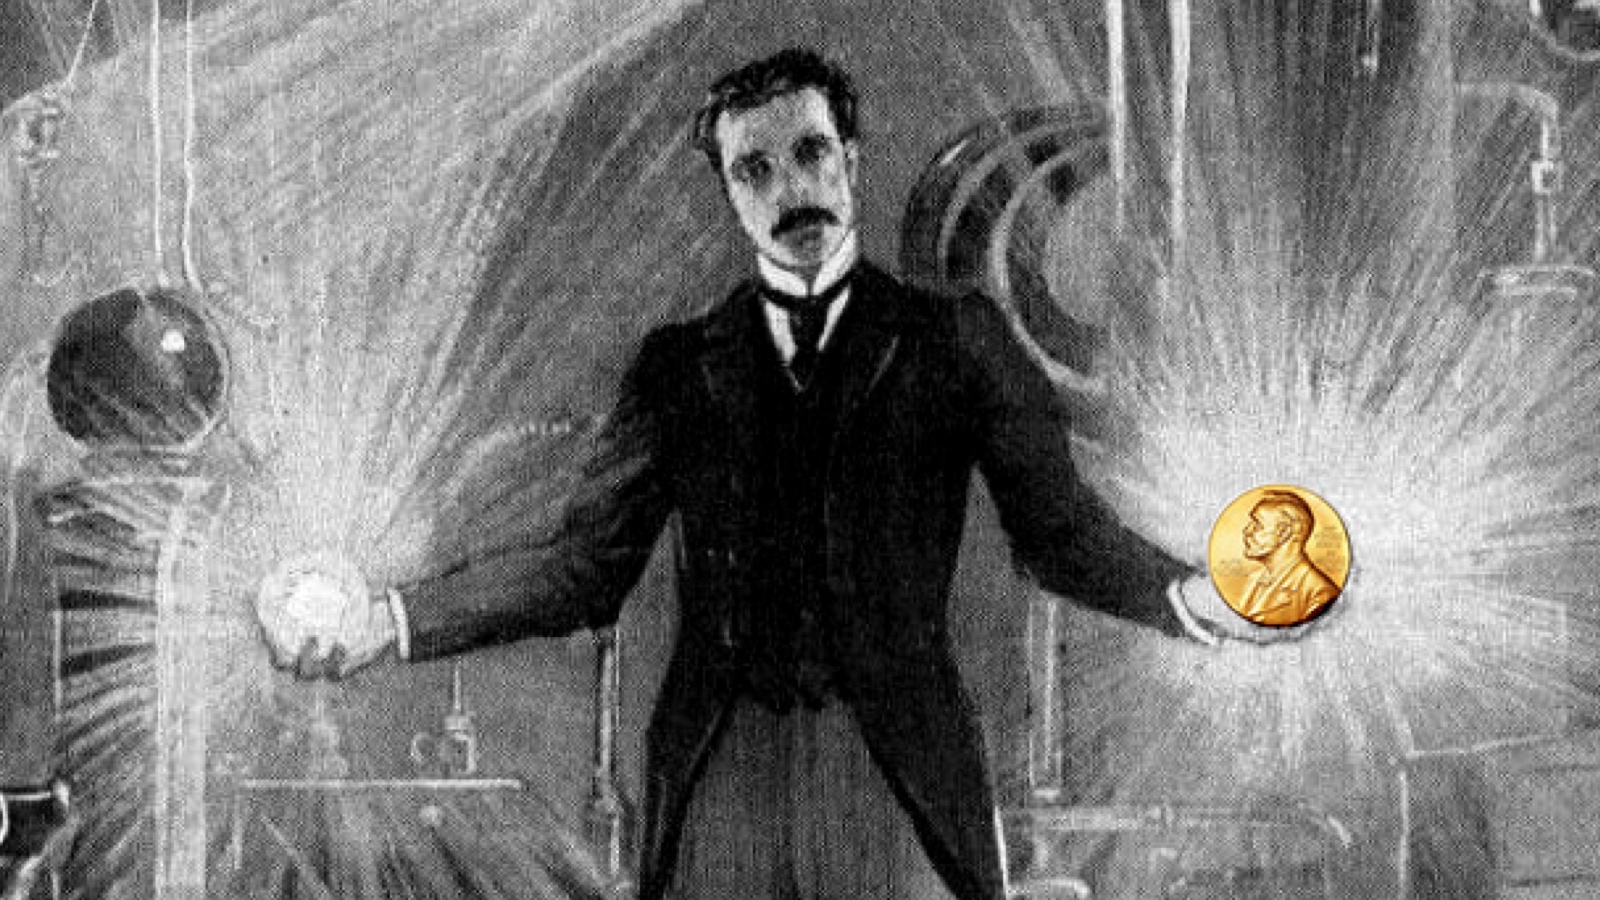 Did Tesla Ever Receive the Nobel Prize?